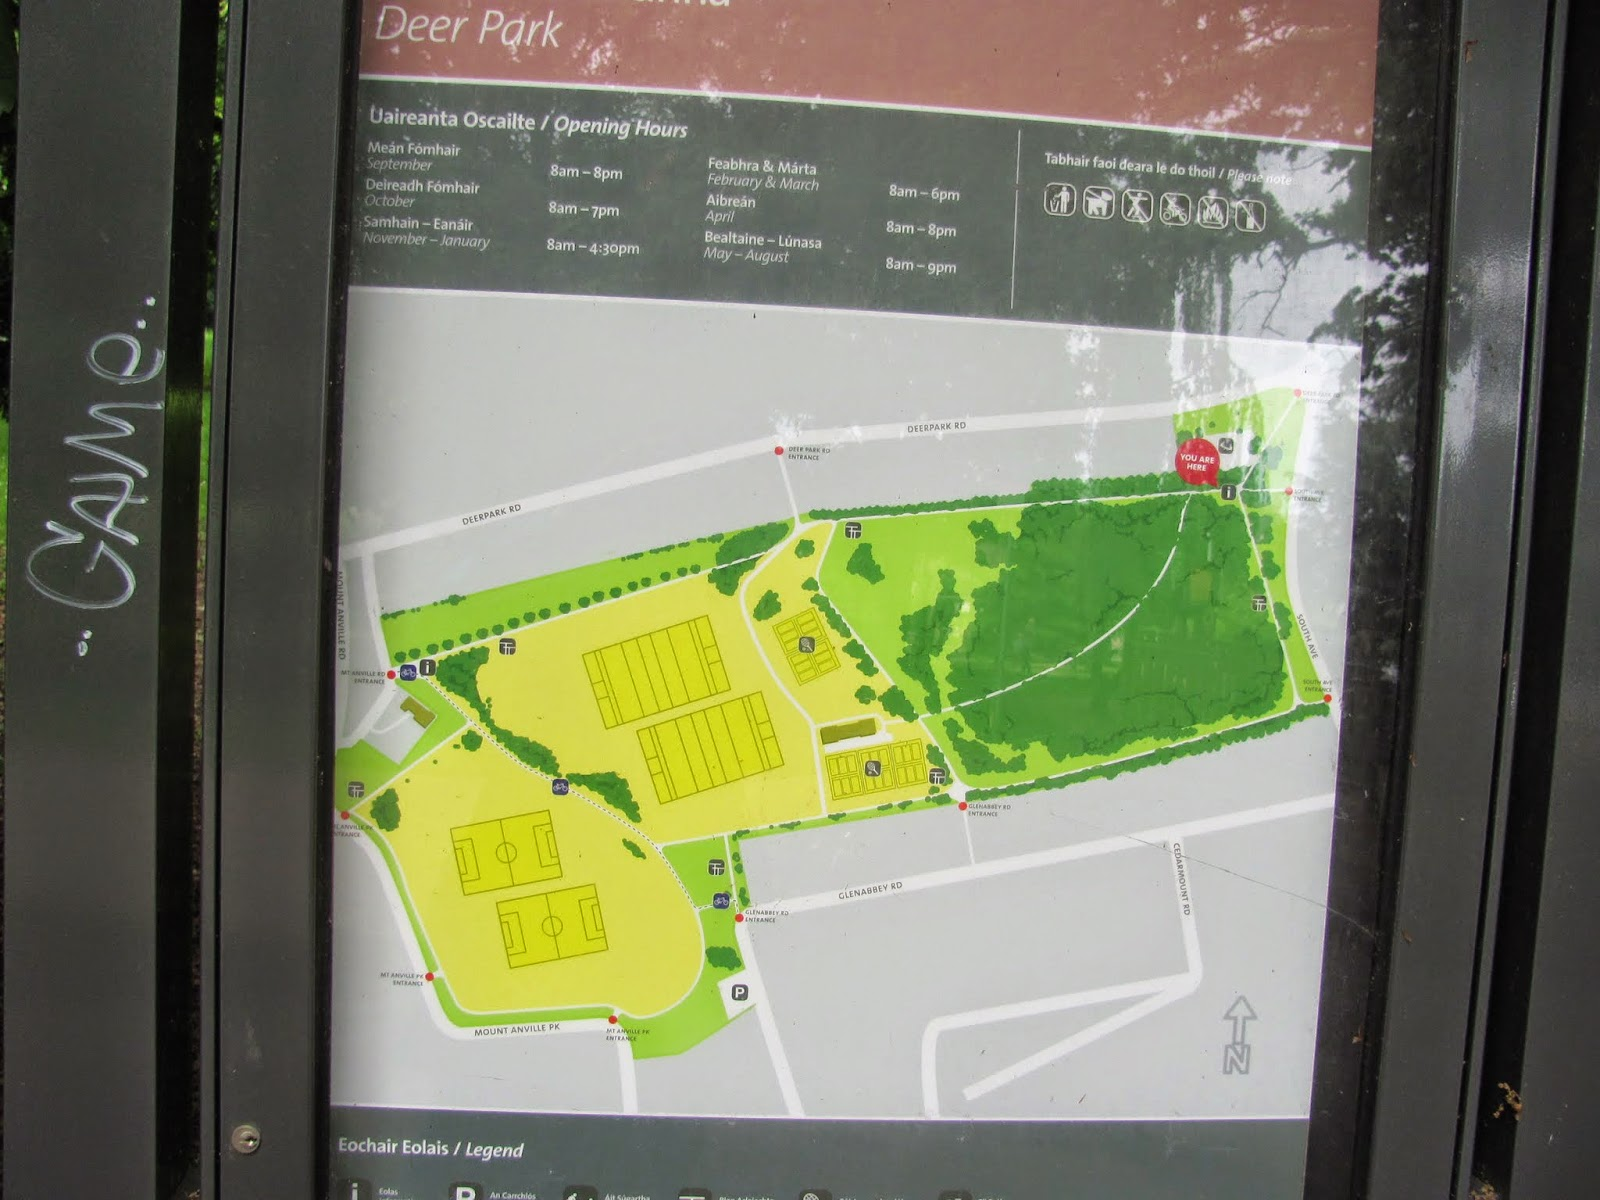 Park Map of Deer Park Dublin, Ireland